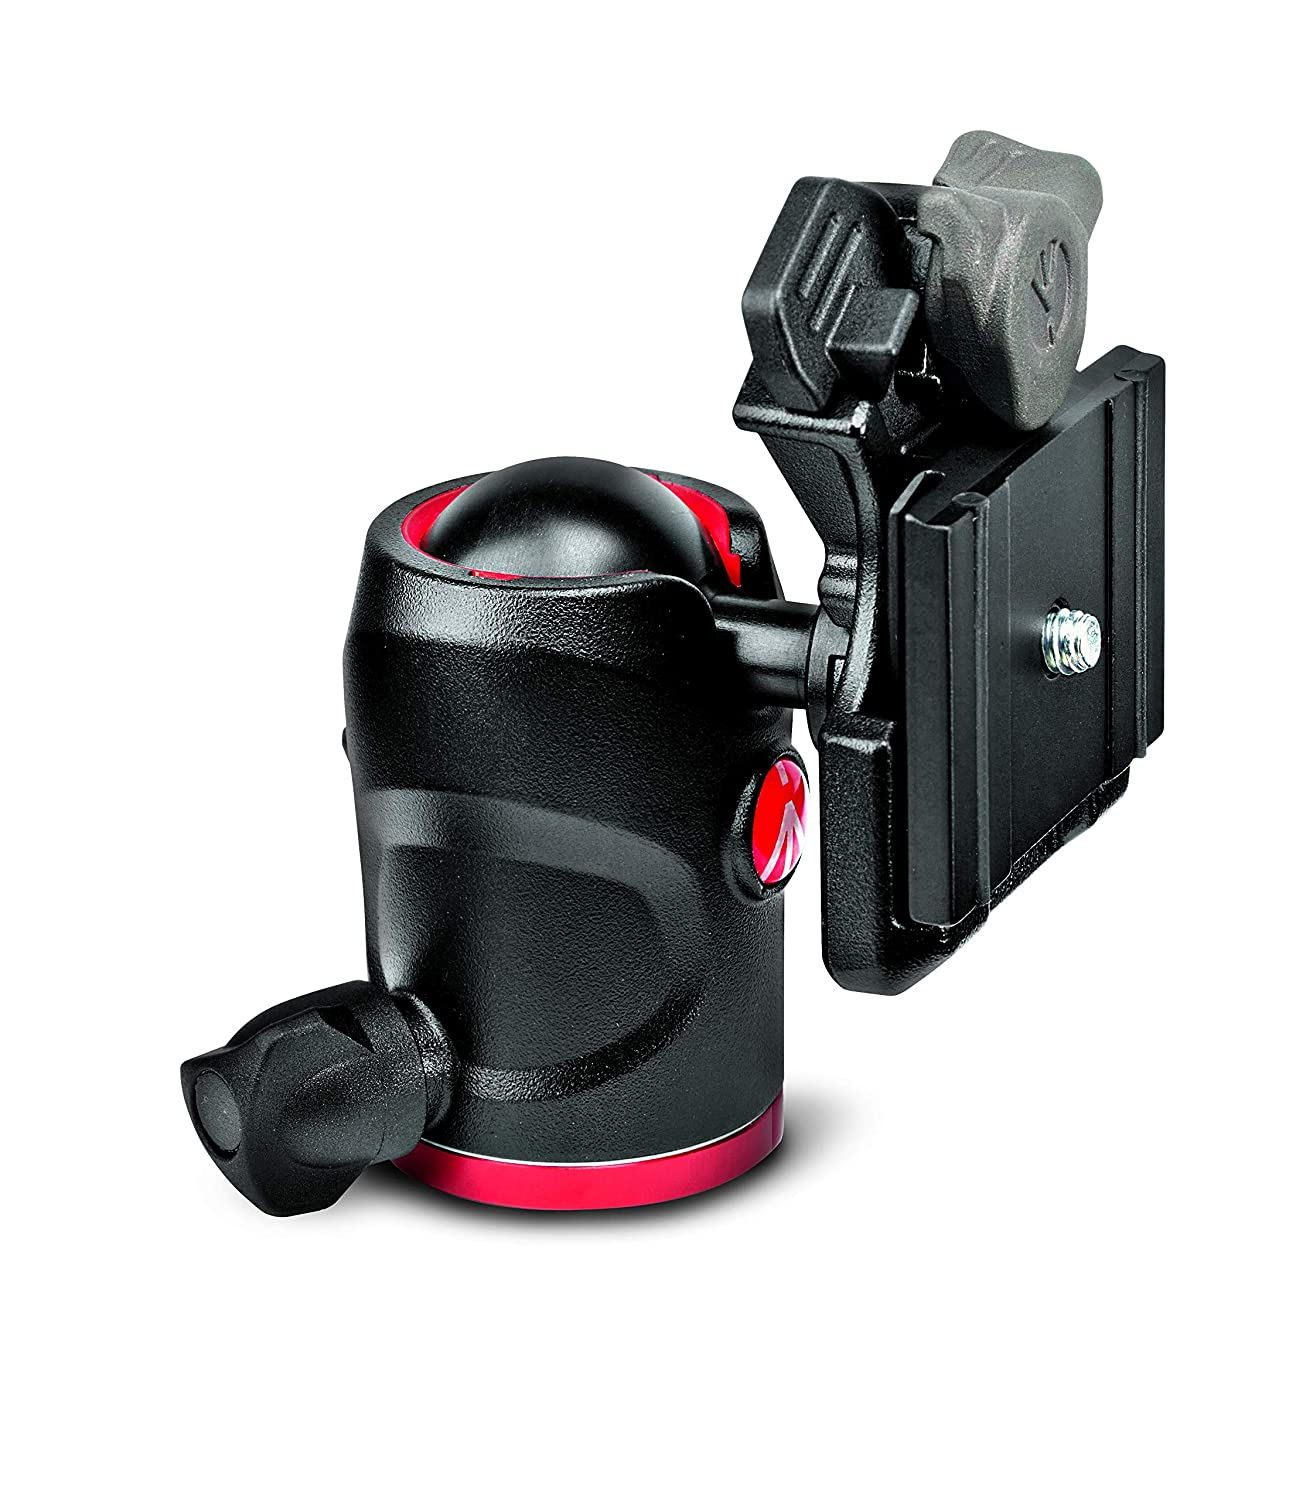 Manfrotto Compact Ball Head with RC2 Quick Release Plate